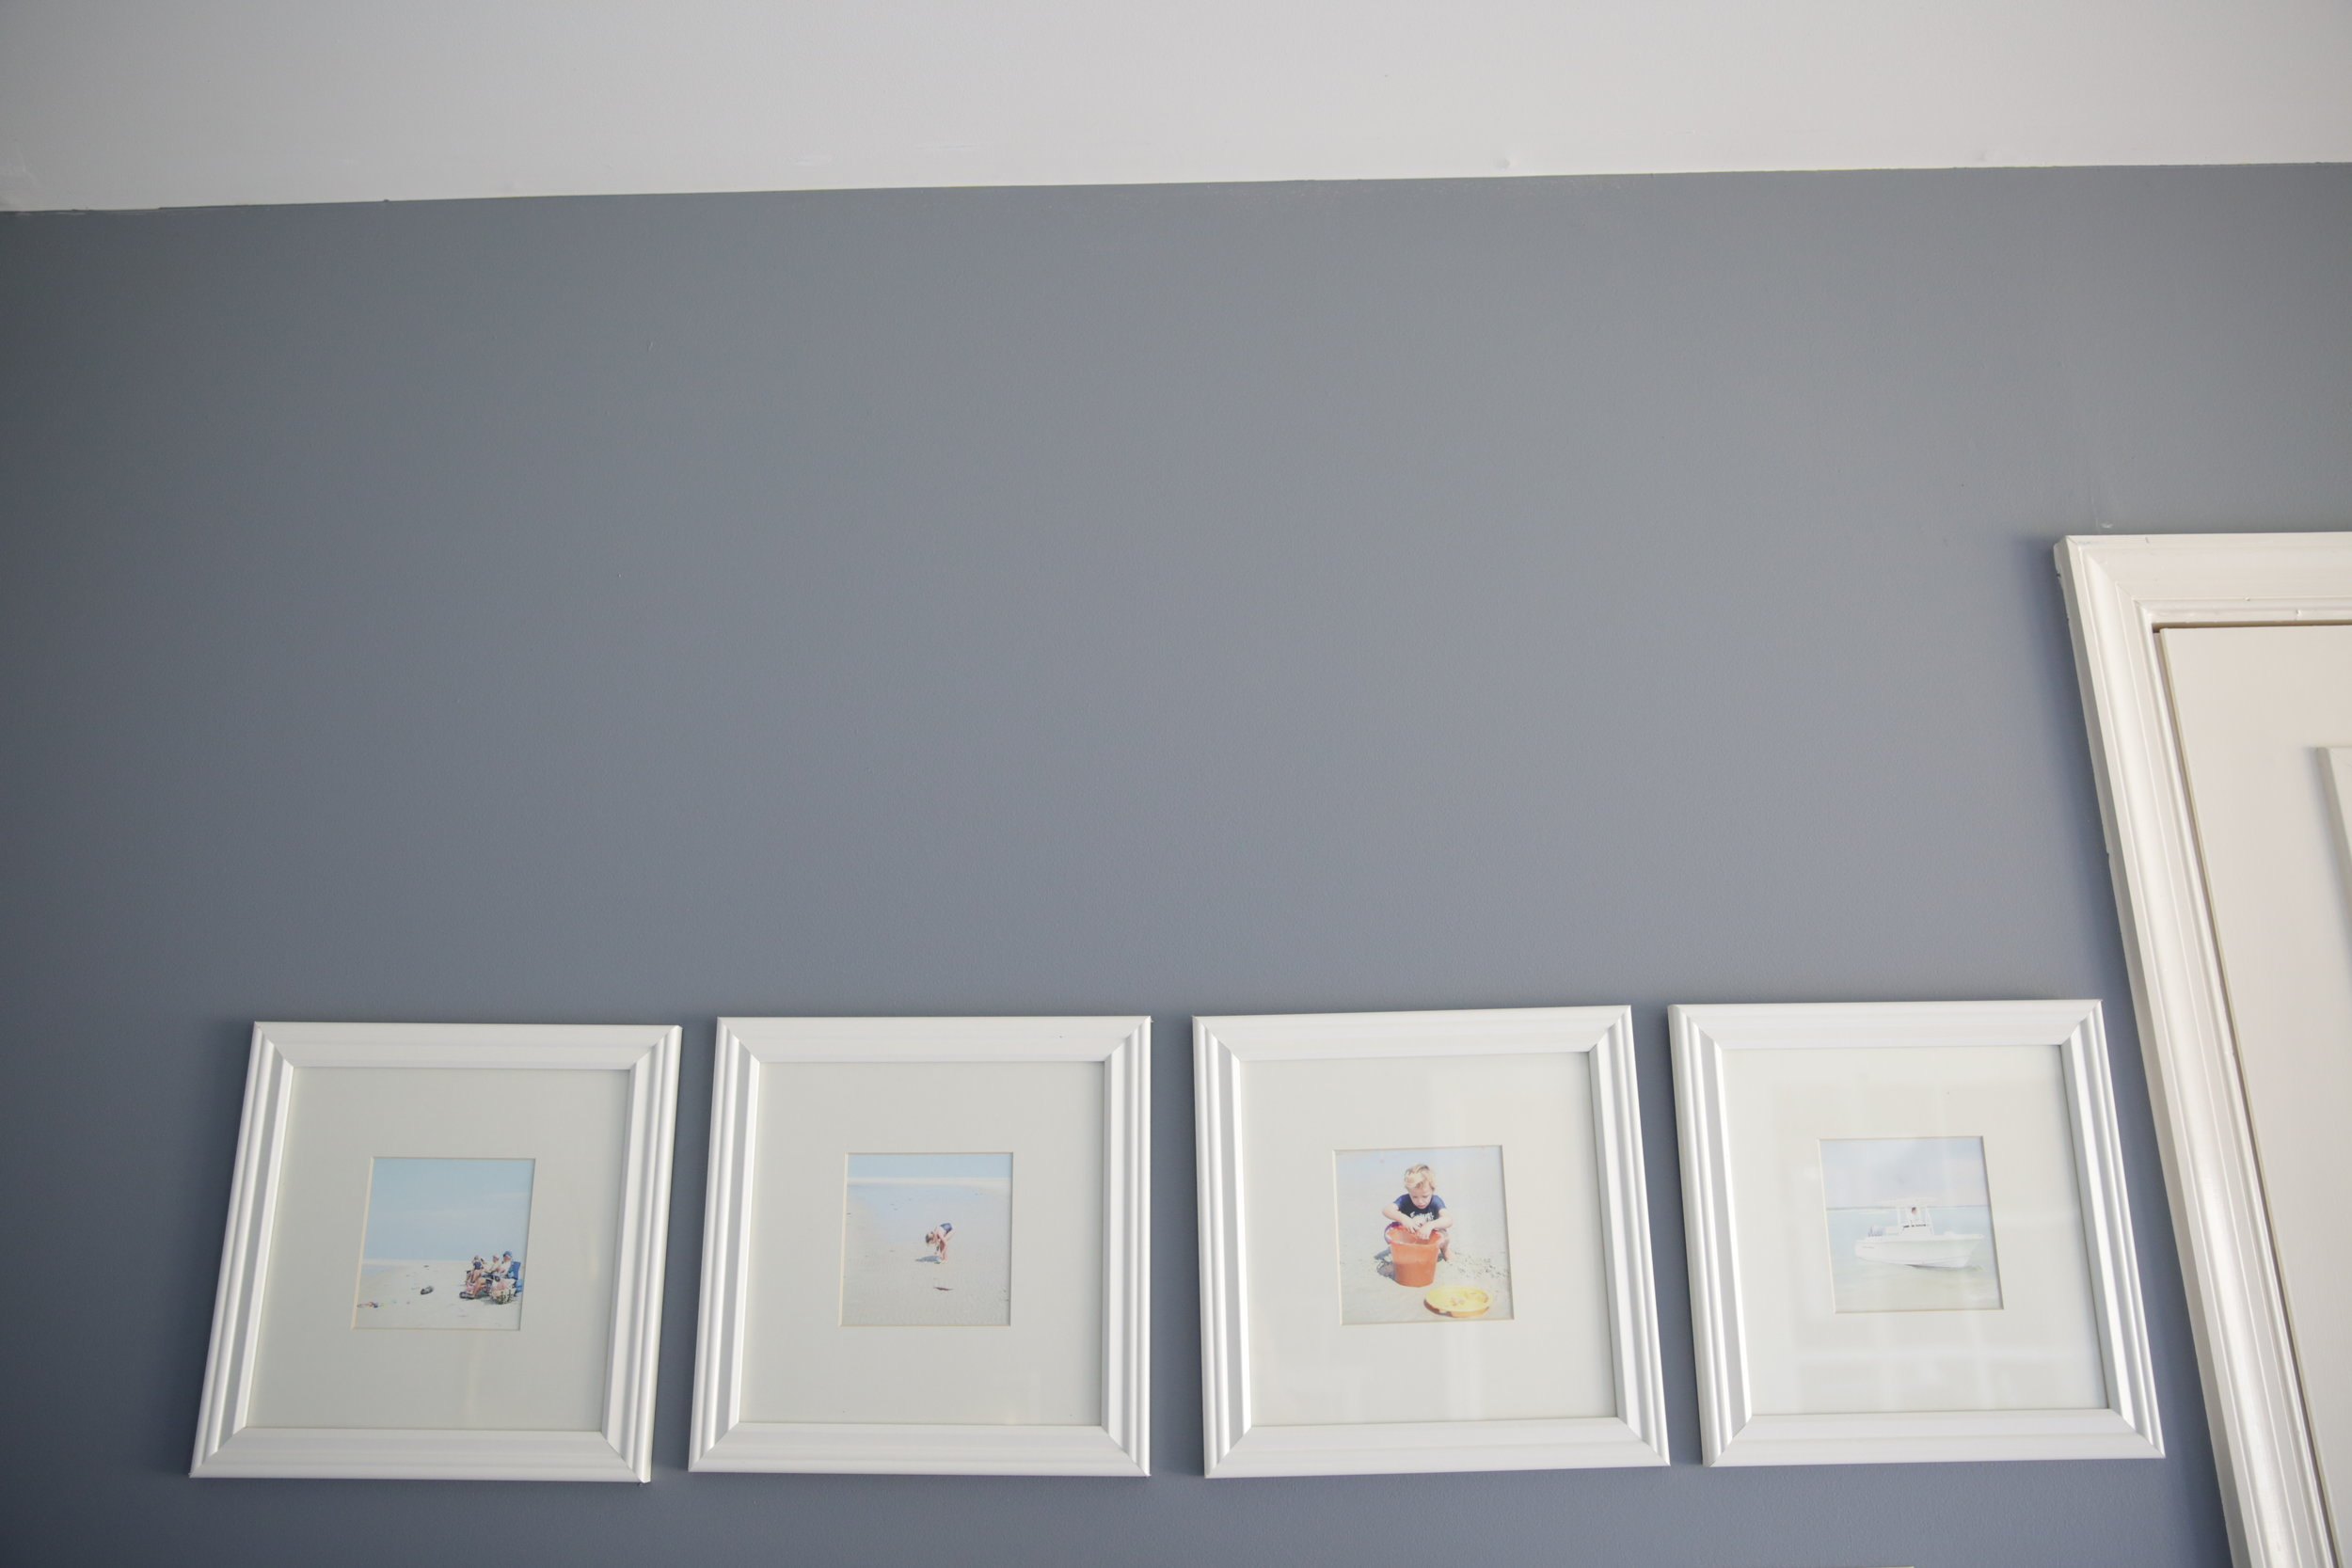 A gallery wall of one of my favorite days at the beach